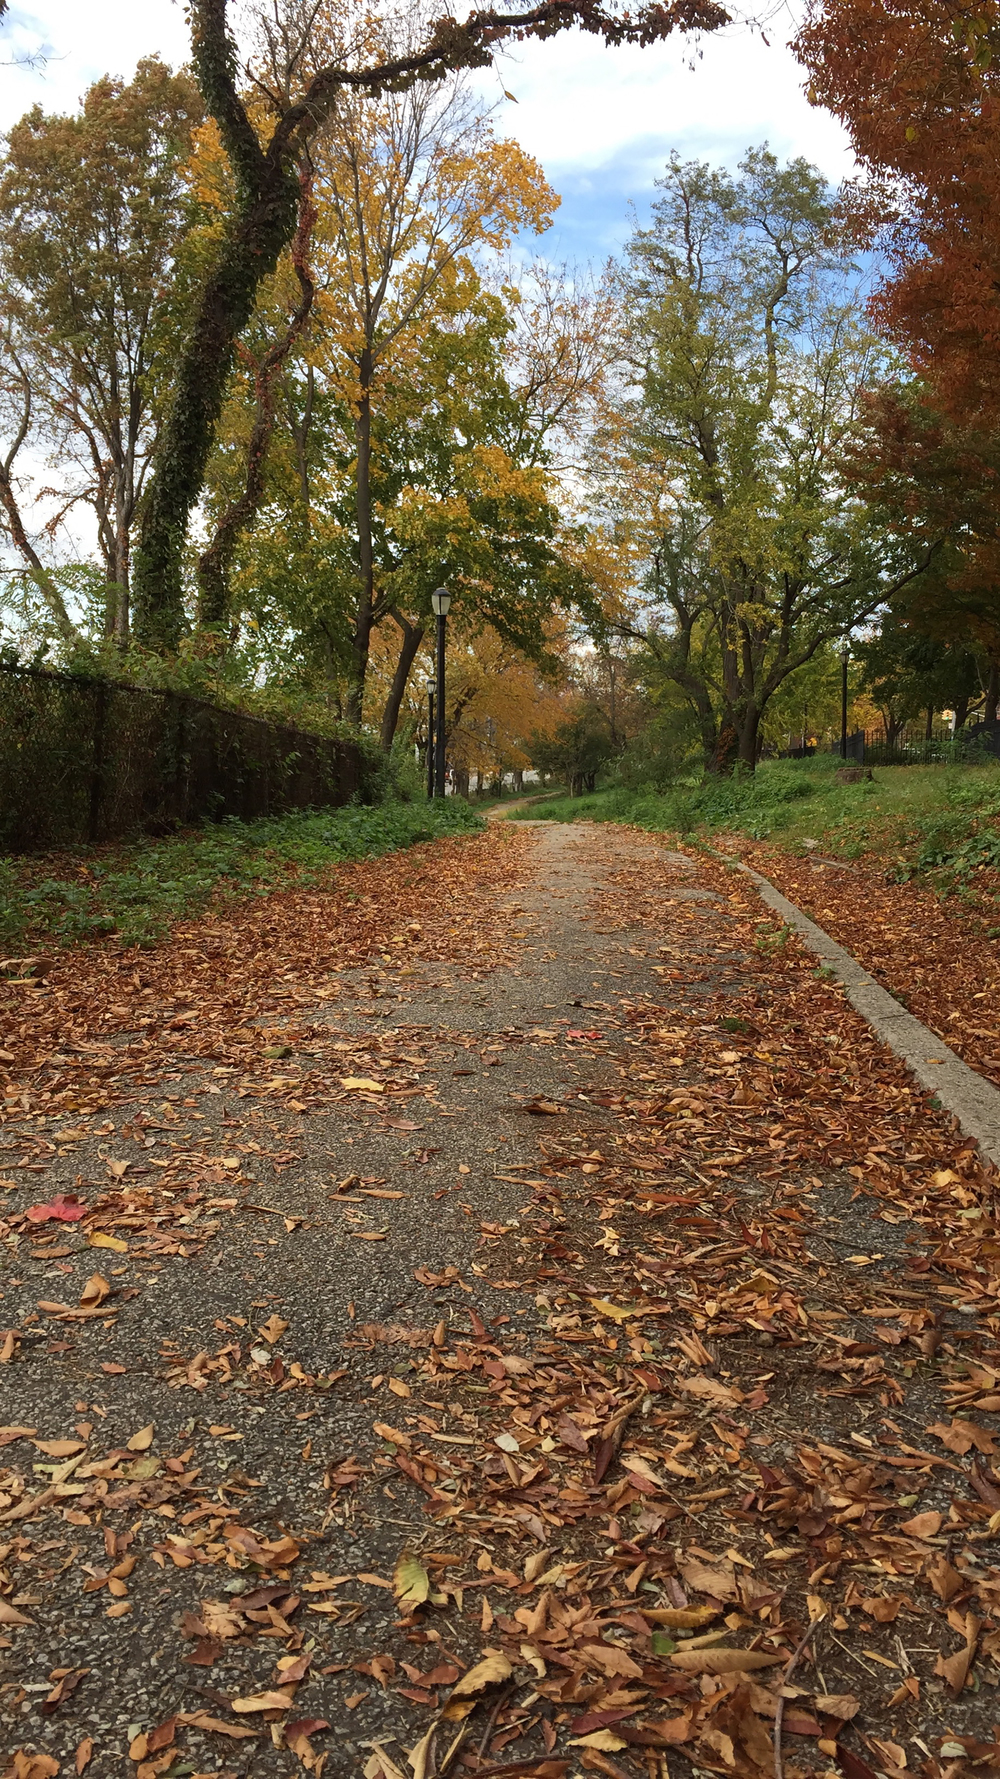 A Shore Road Walking Path - November 1, 2015